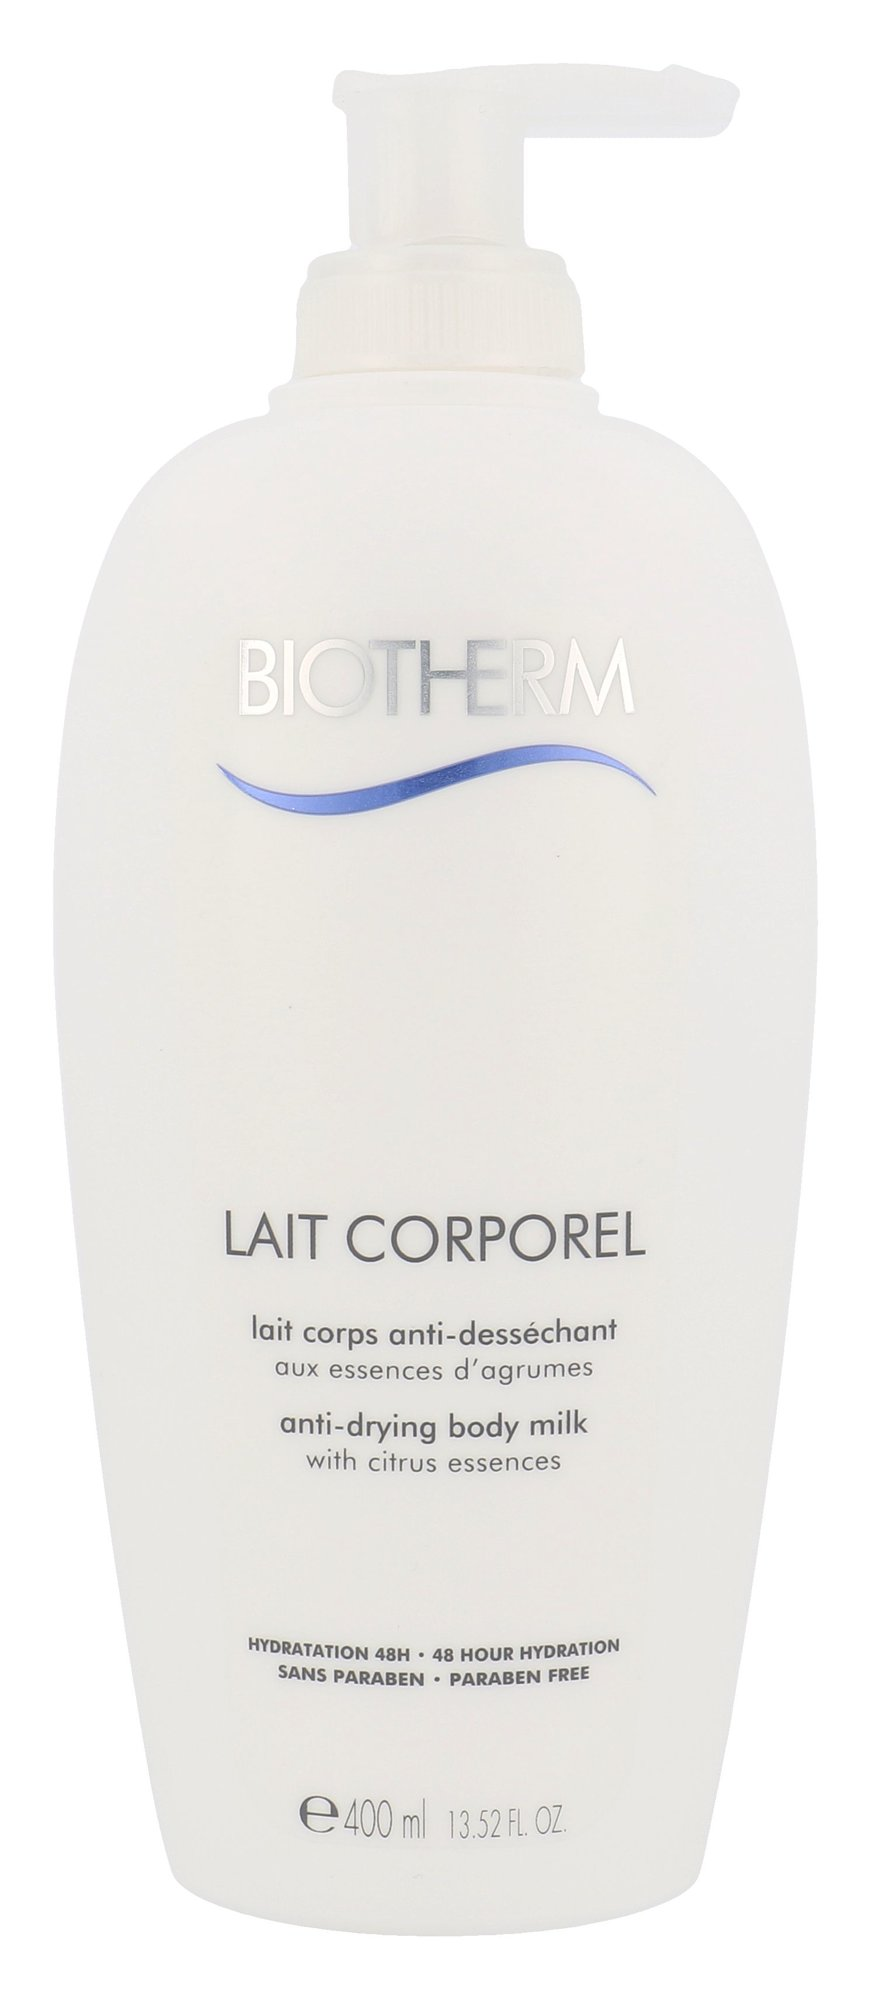 Biotherm Lait Corporel Cosmetic 400ml